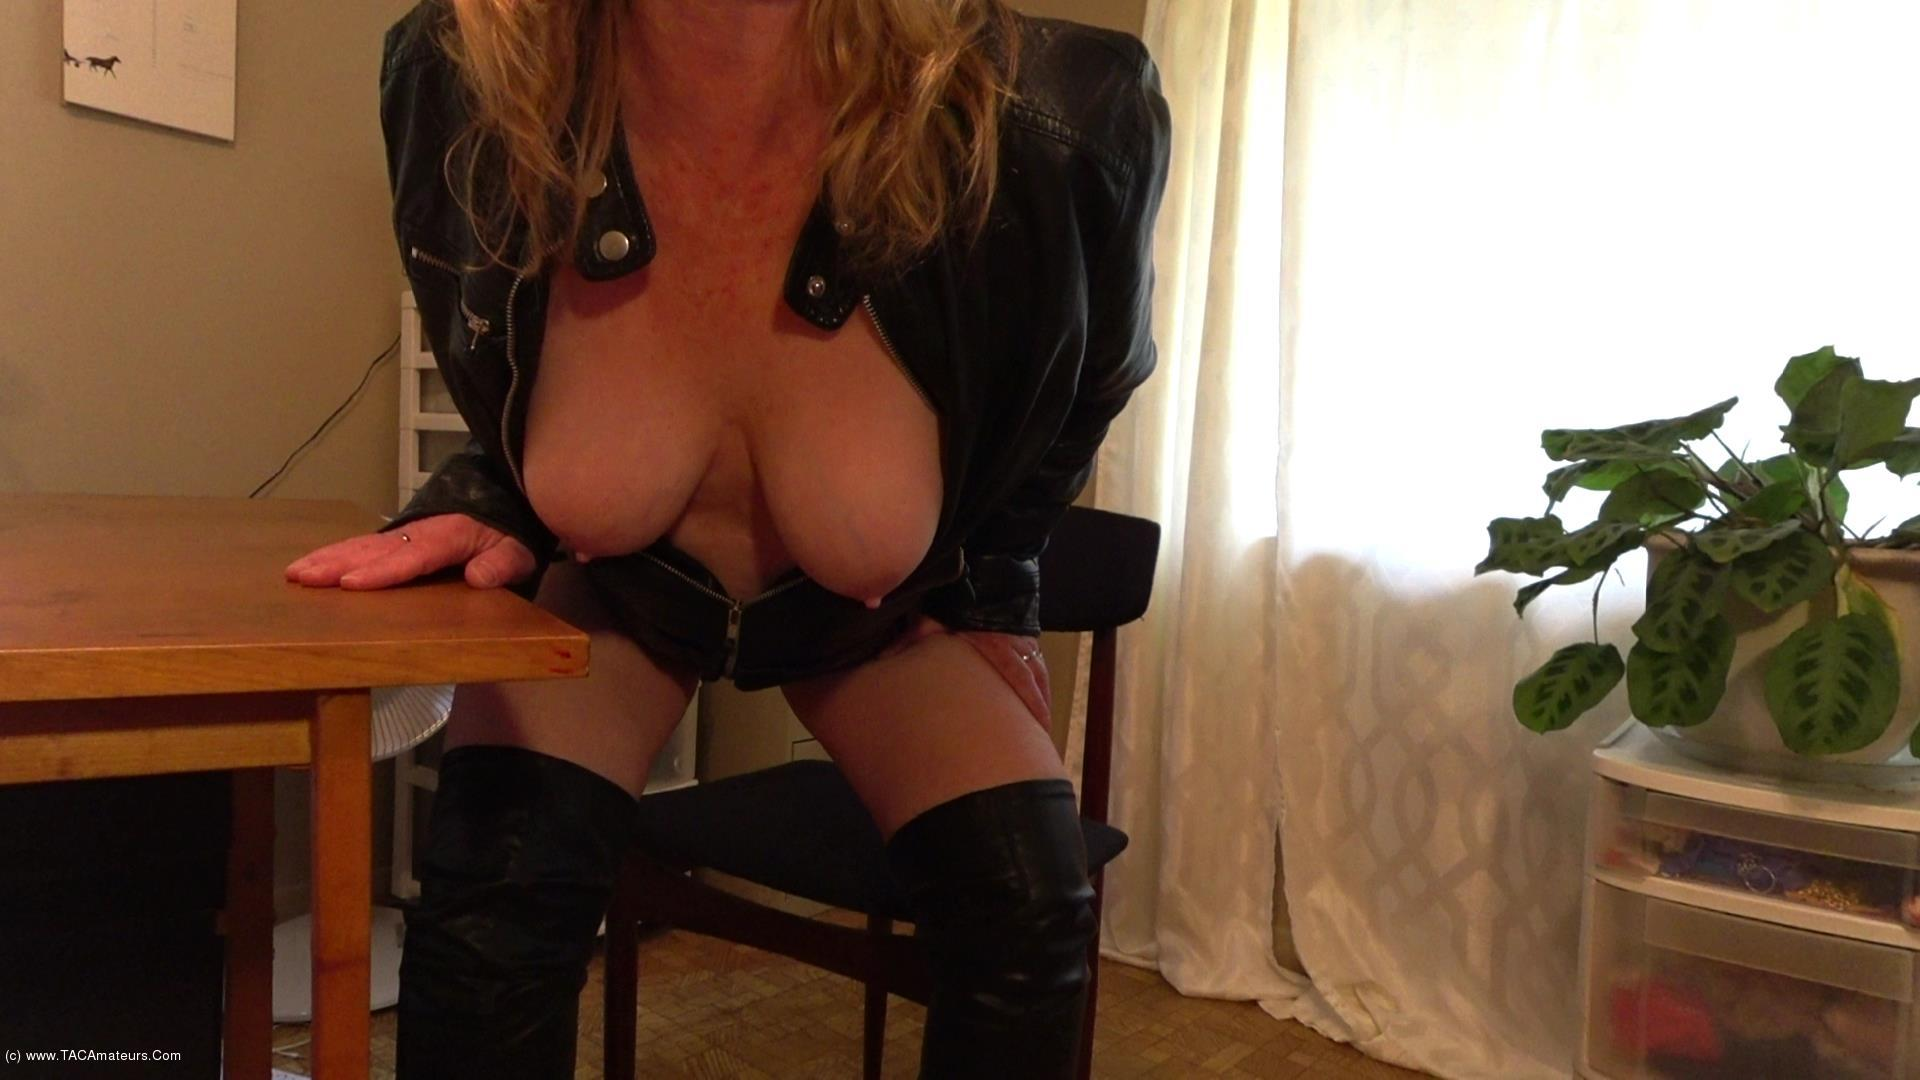 CougarBabeJolee - I'm In Leathers, Do As I Say! scene 2